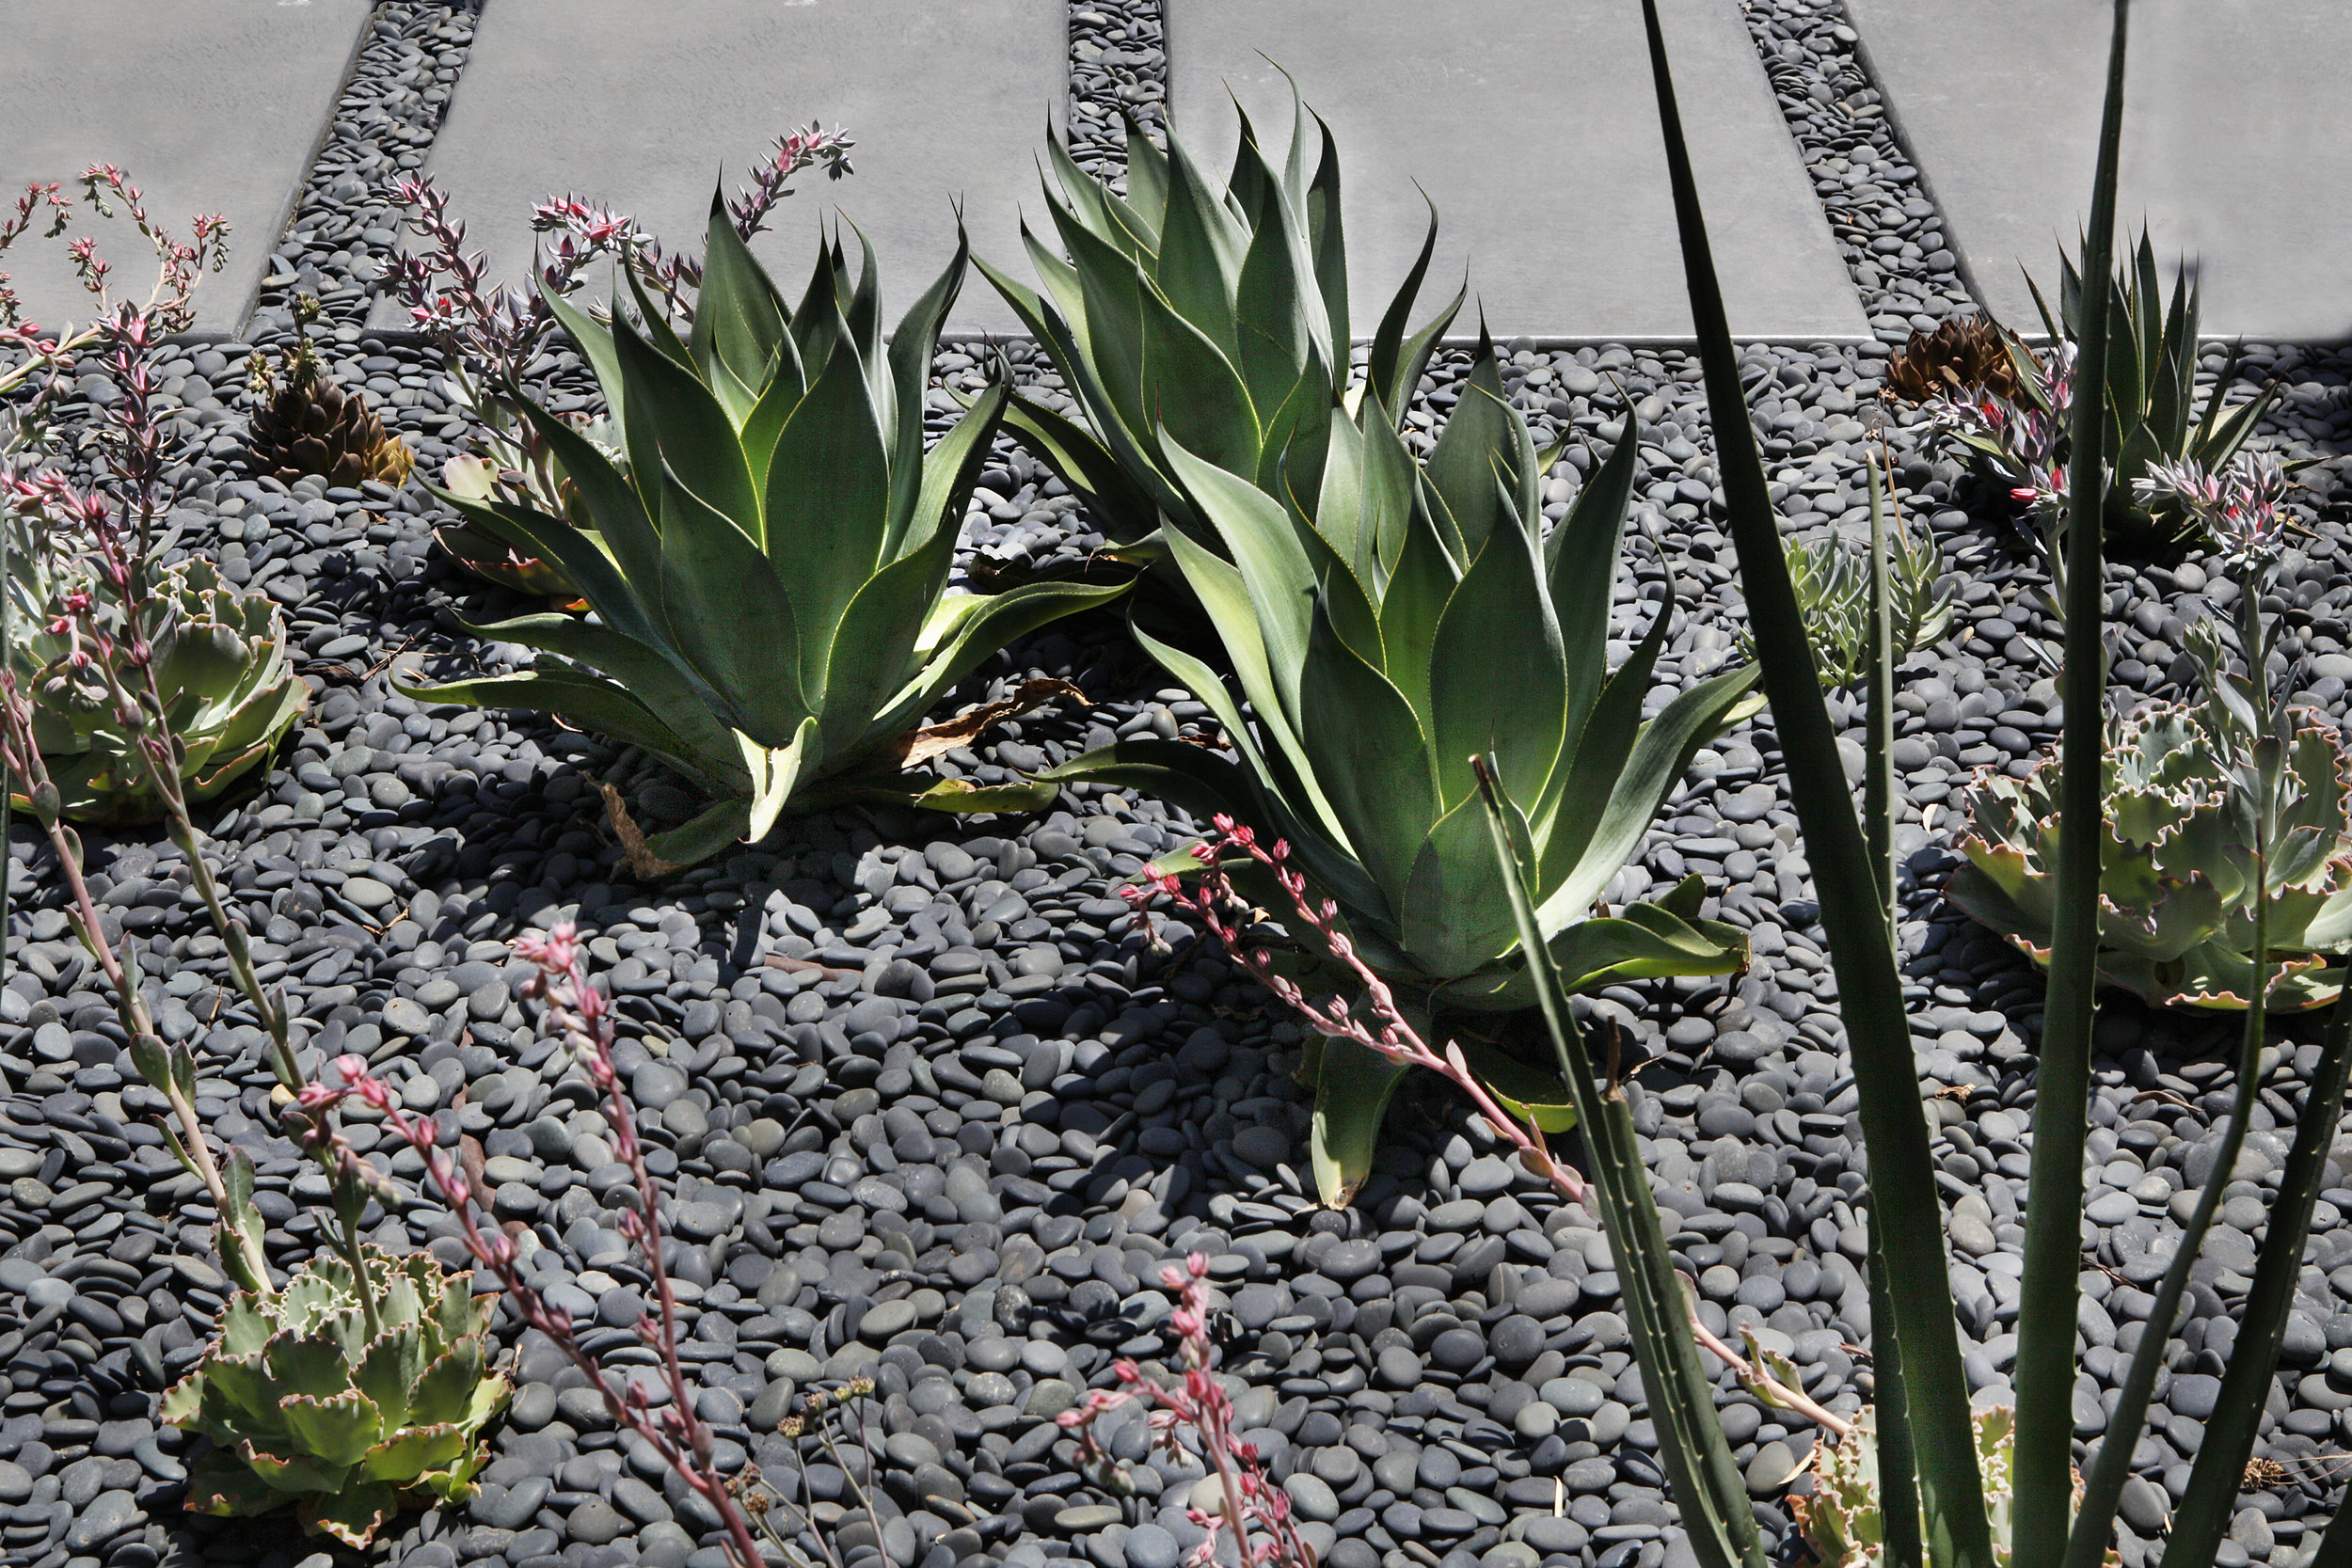 aloe and agave - Drought tolerant moroccan inspired xeriscape West Hollywood walled garden hedge house - Los Angeles garden design by Campion Walker Landscapes